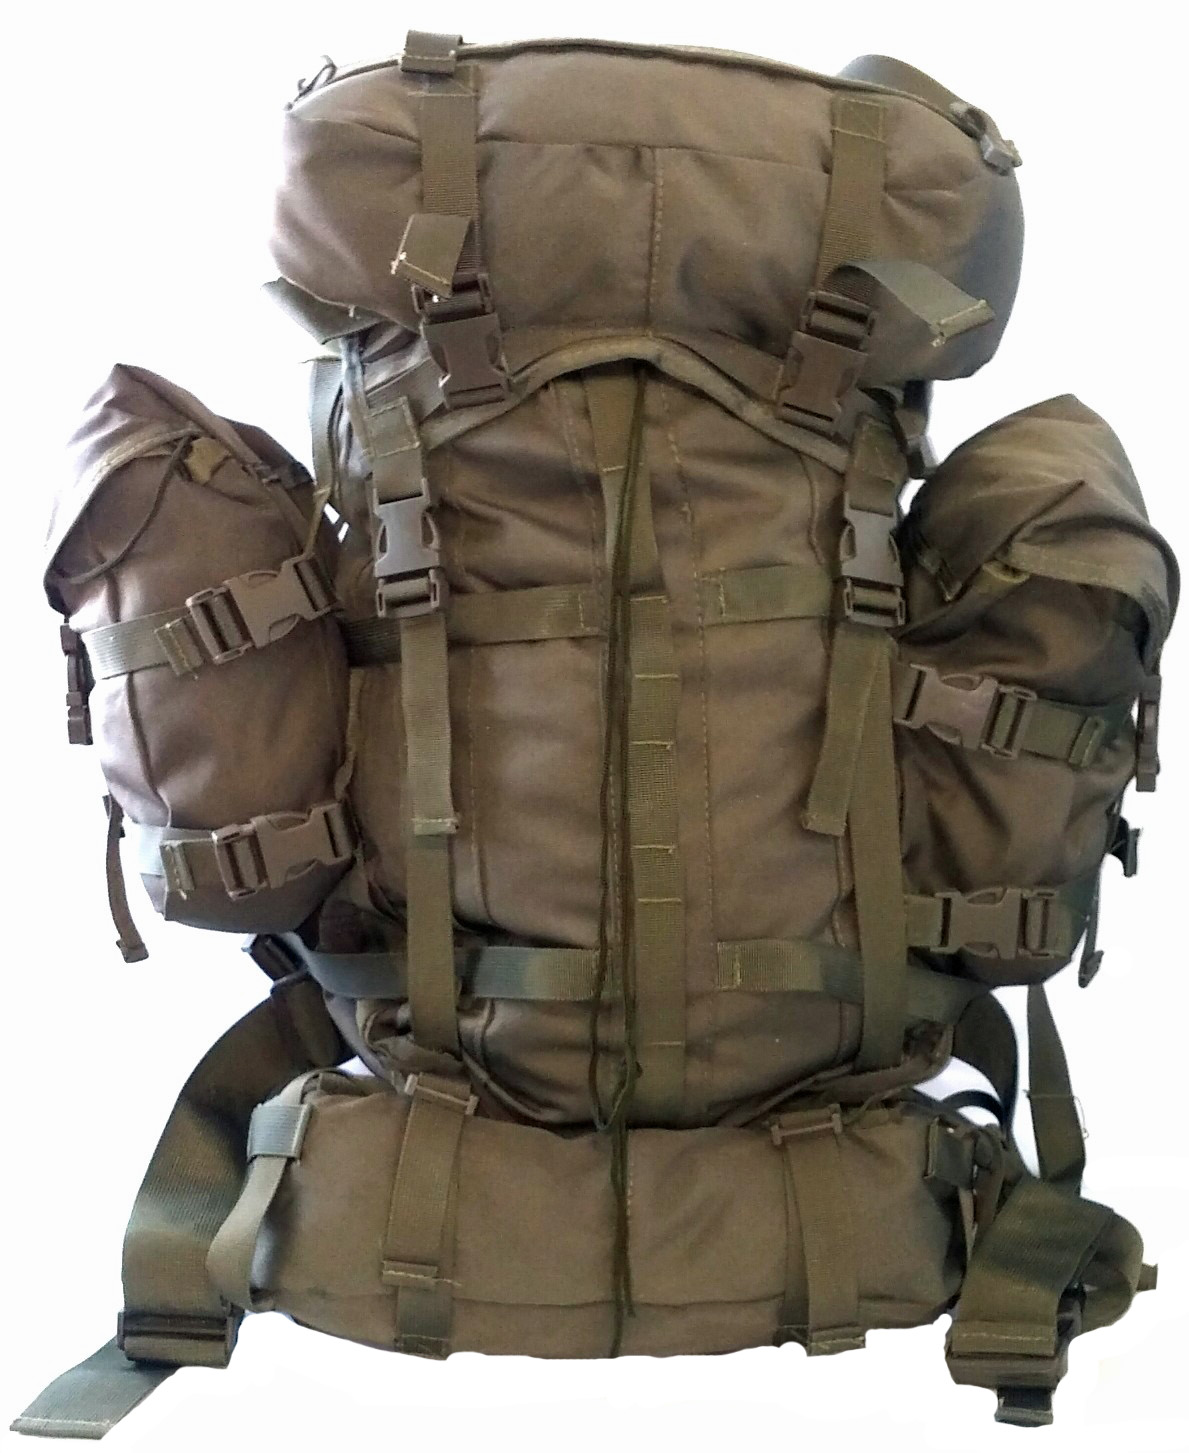 SGS Canadian force patrol backpack